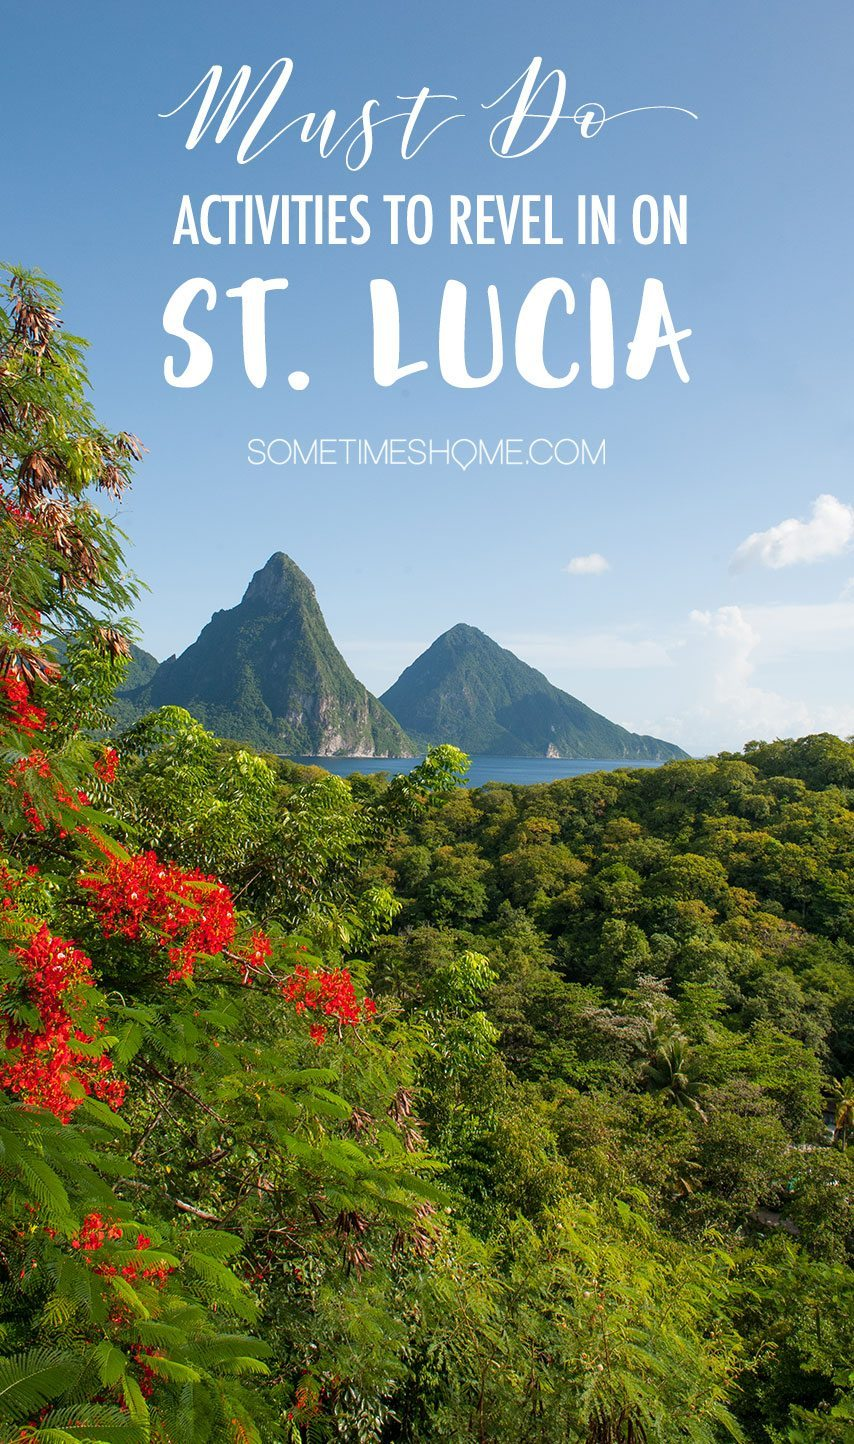 Must Do Activities to Revel in On Vacation in St. Lucia on Sometimes Home travel blog.